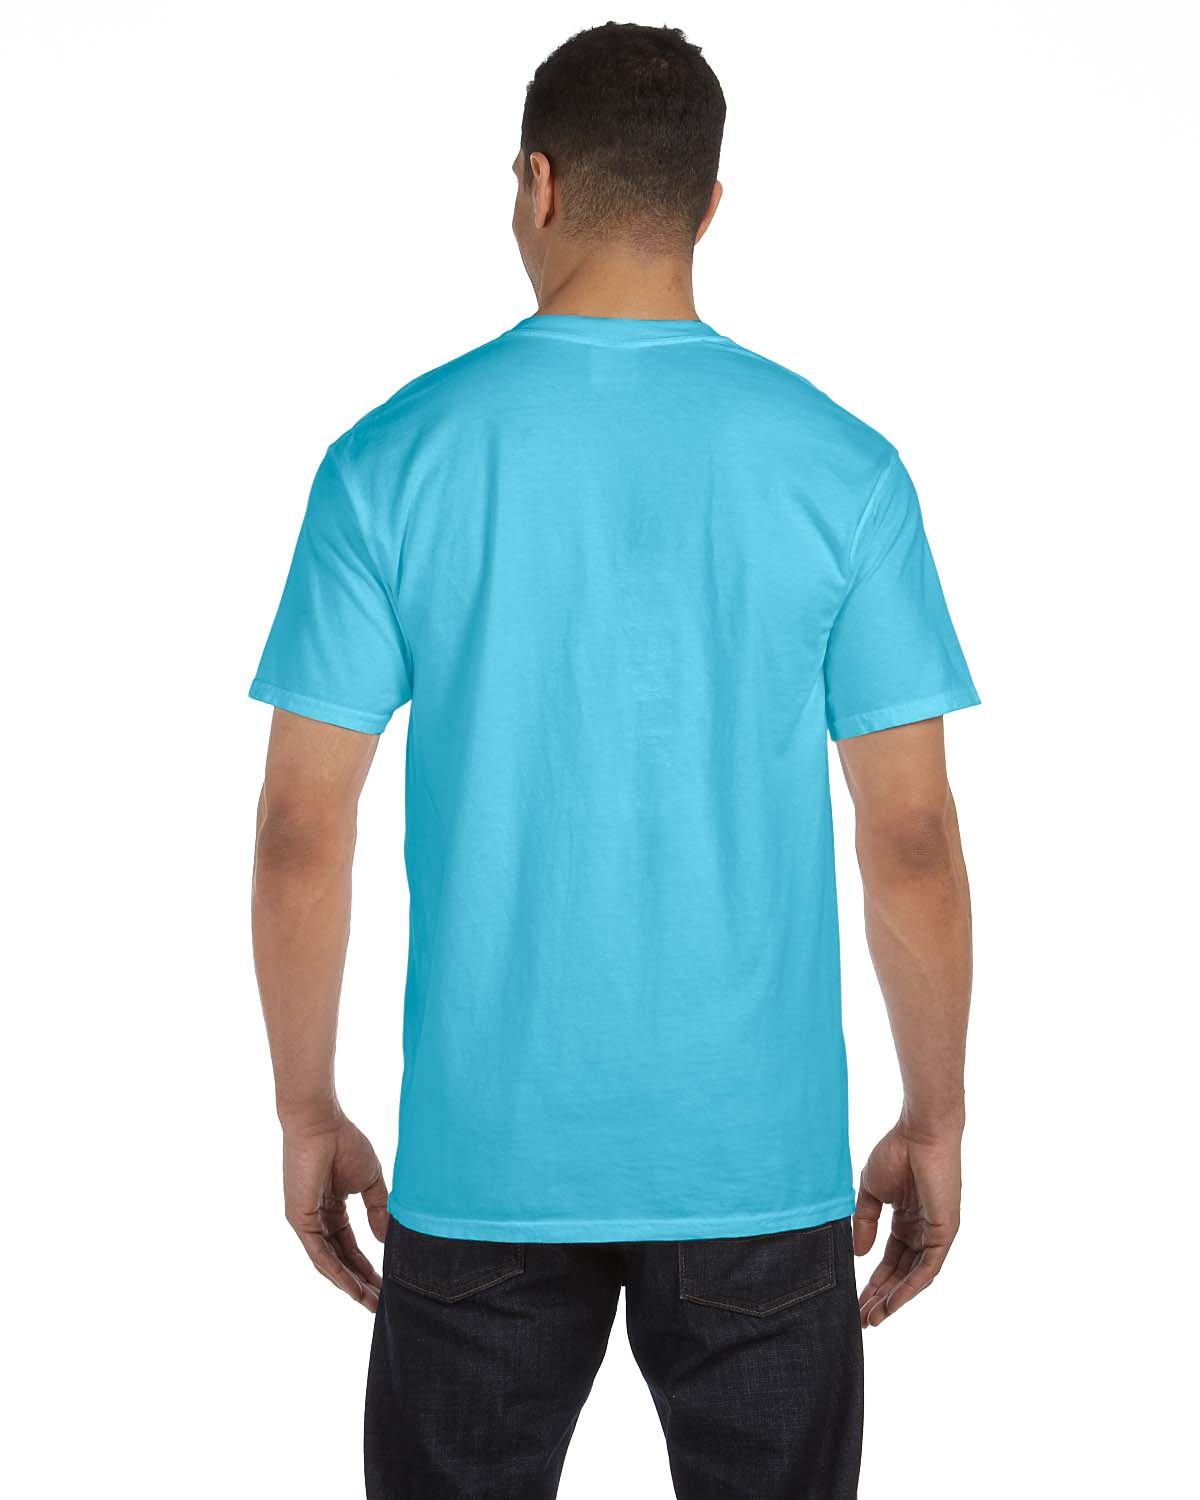 Comfort colors 6 1 oz garment dyed pocket t shirt s 3xl m for Where can i sell my shirts online